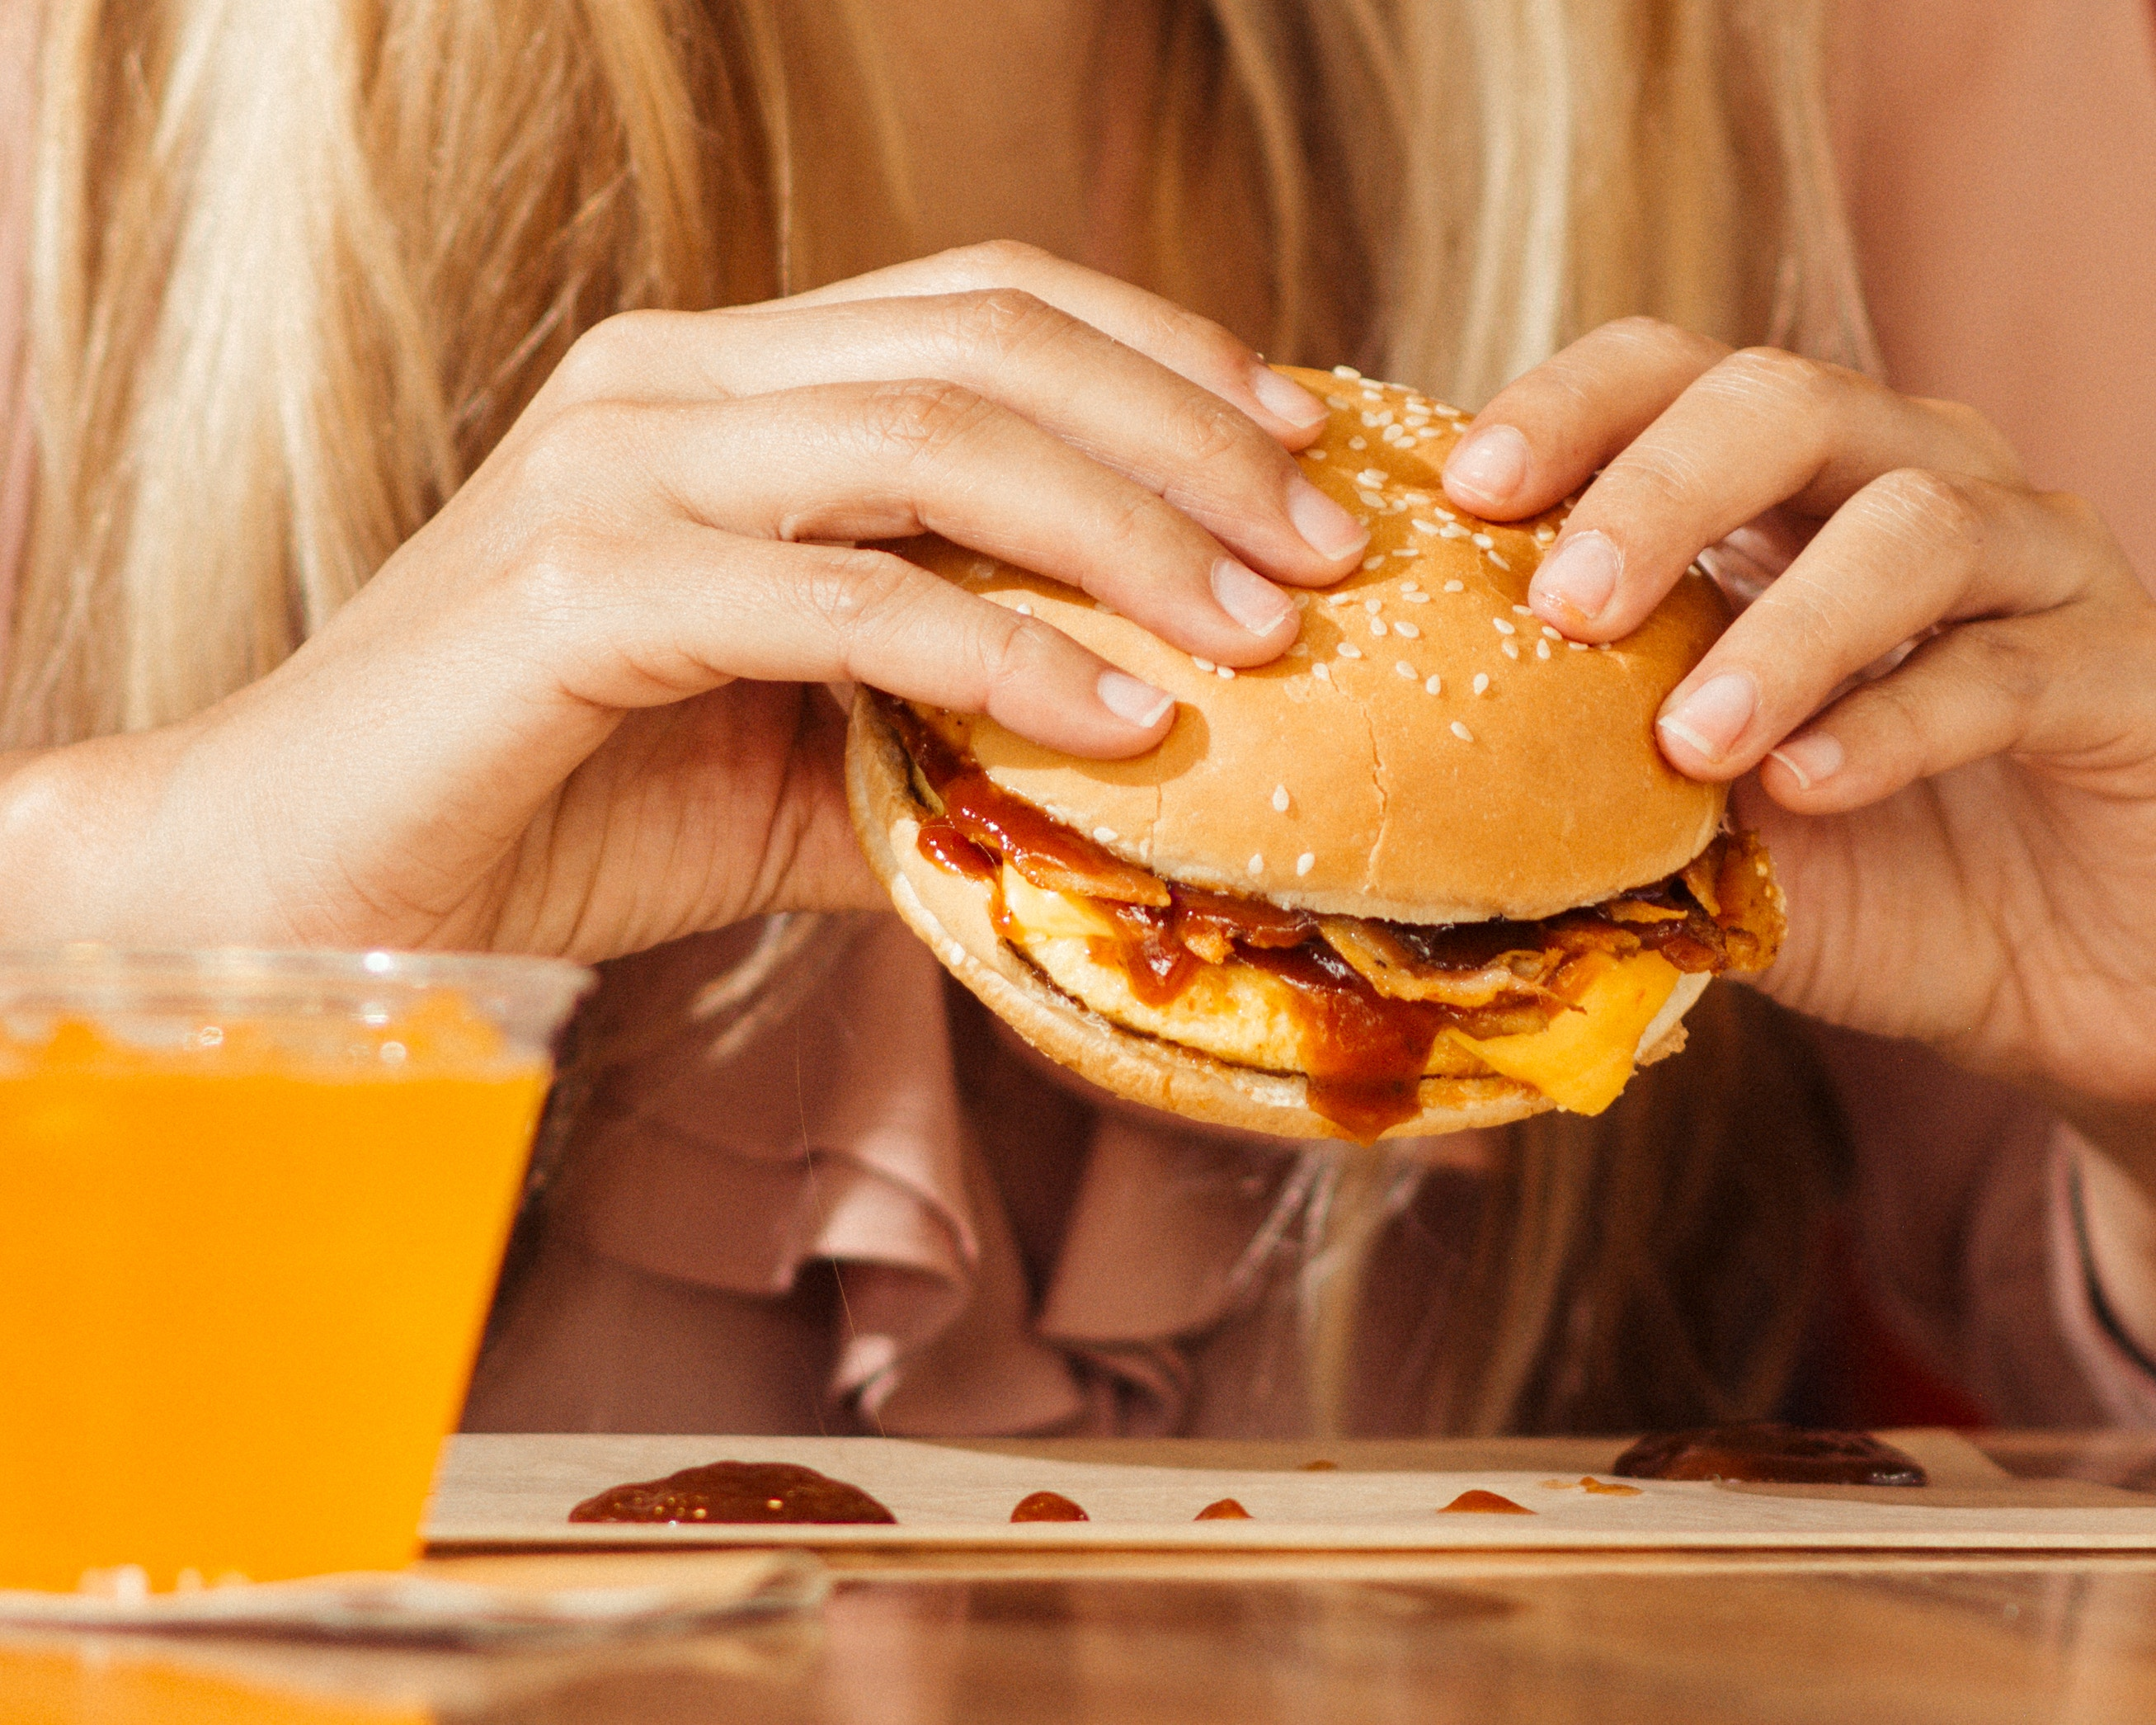 Woman with blonde hair holding burger